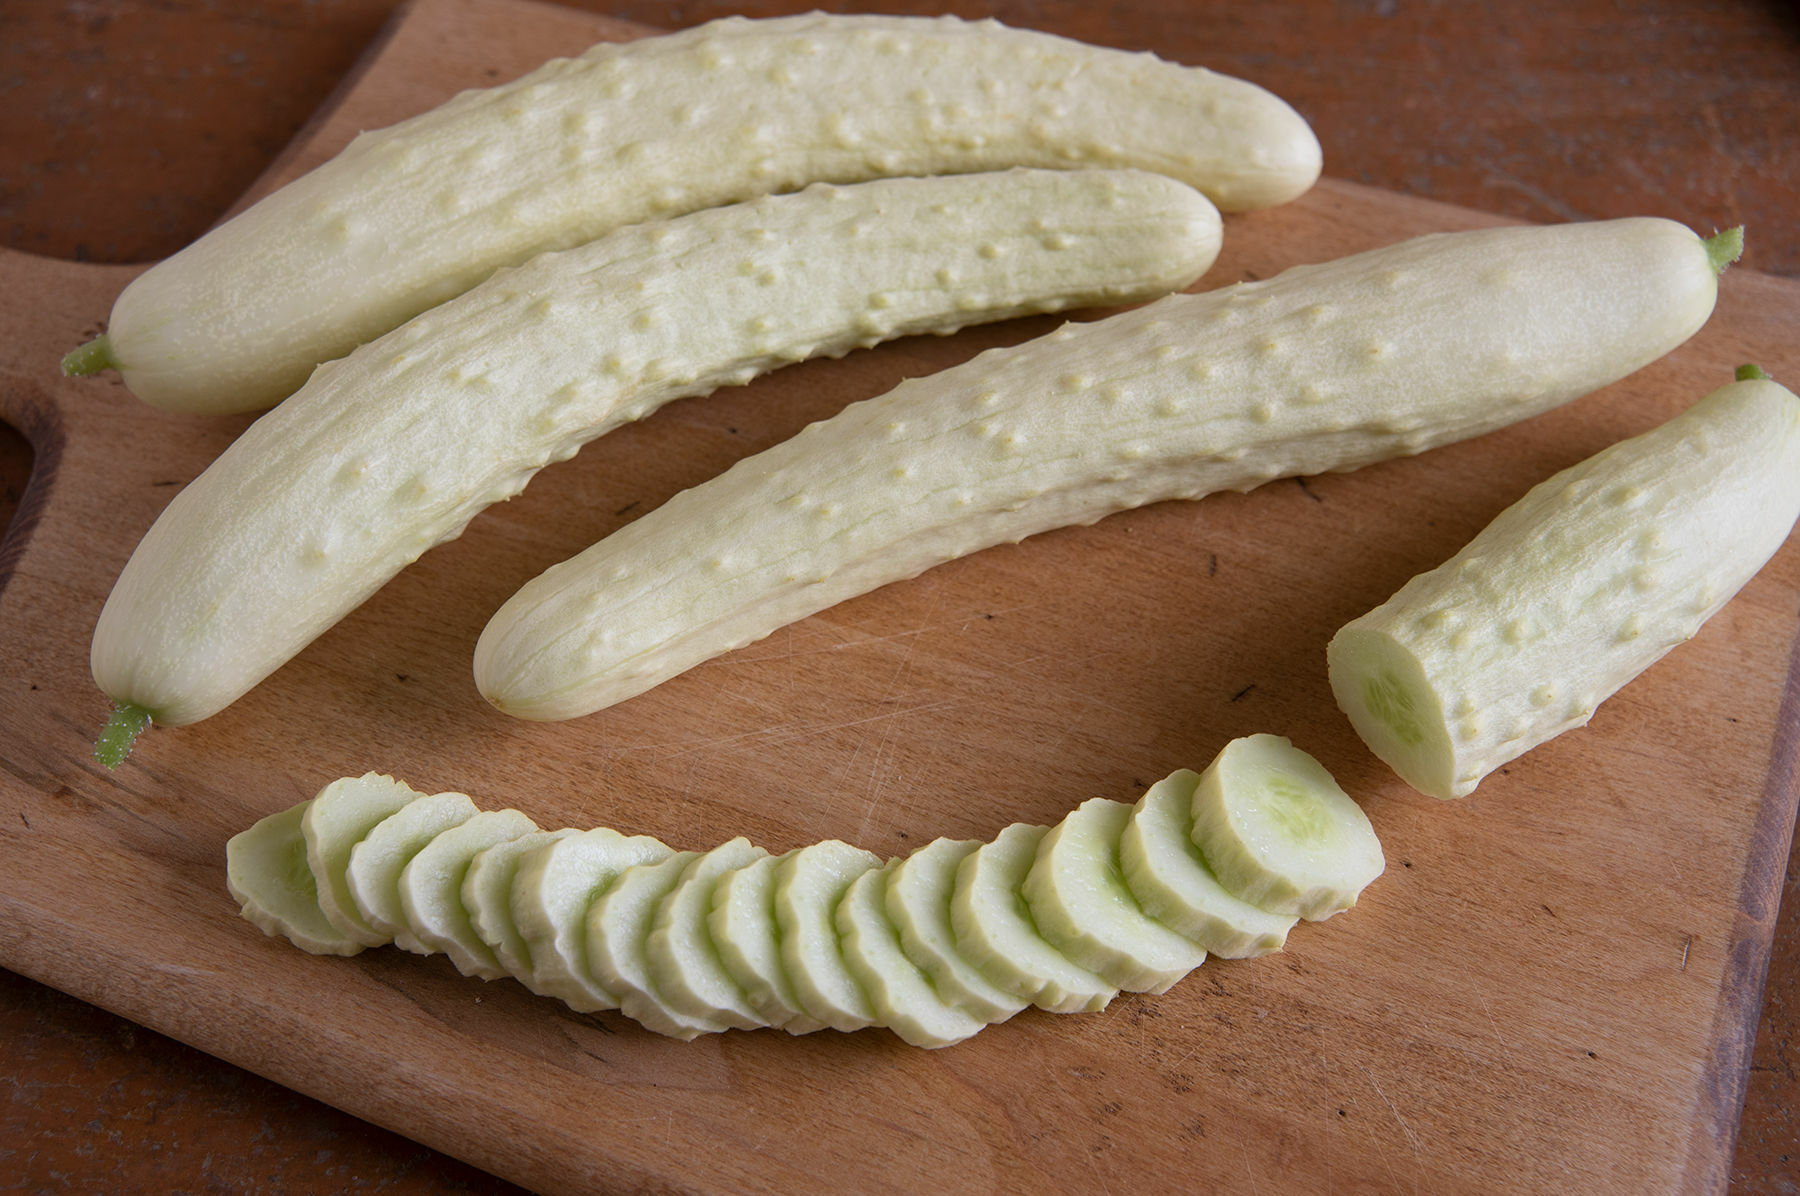 Most gardeners are not familiar with the white varieties. Like this Itachi from Johnny's they tend to be mild to sweet with few to no seeds. This is a cuke that is 9 to 11 inches long, an Asian type, and it needs to be grown vertically. From seeding to harvest in warm soil, about 55 days. COURTESY NBG